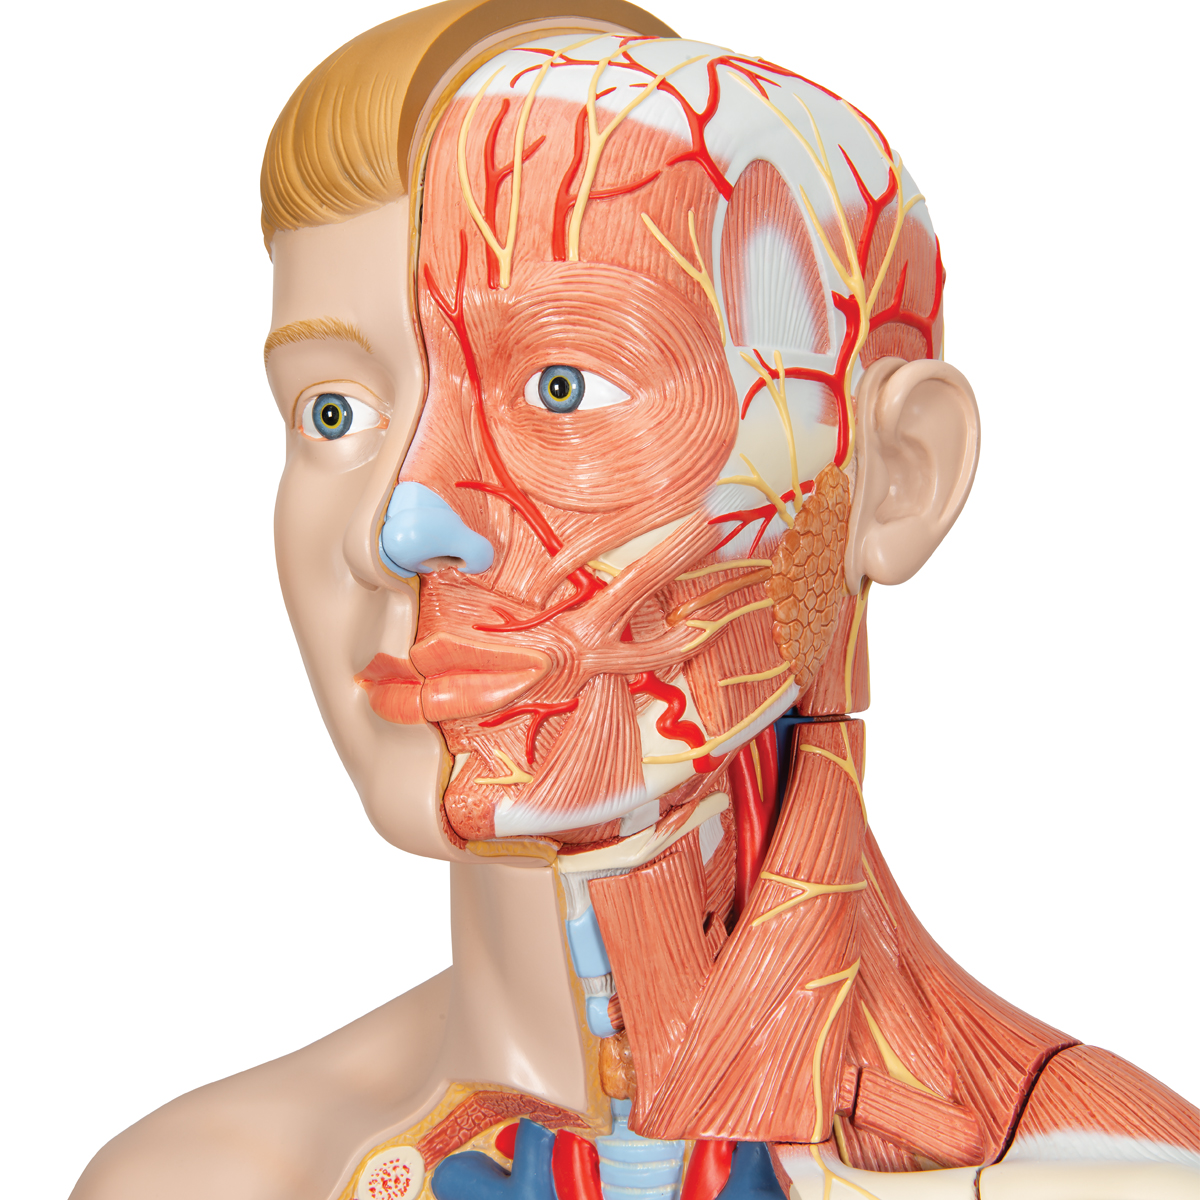 Human Torso Model - Life-Size Torso Model - Anatomical Teaching ...